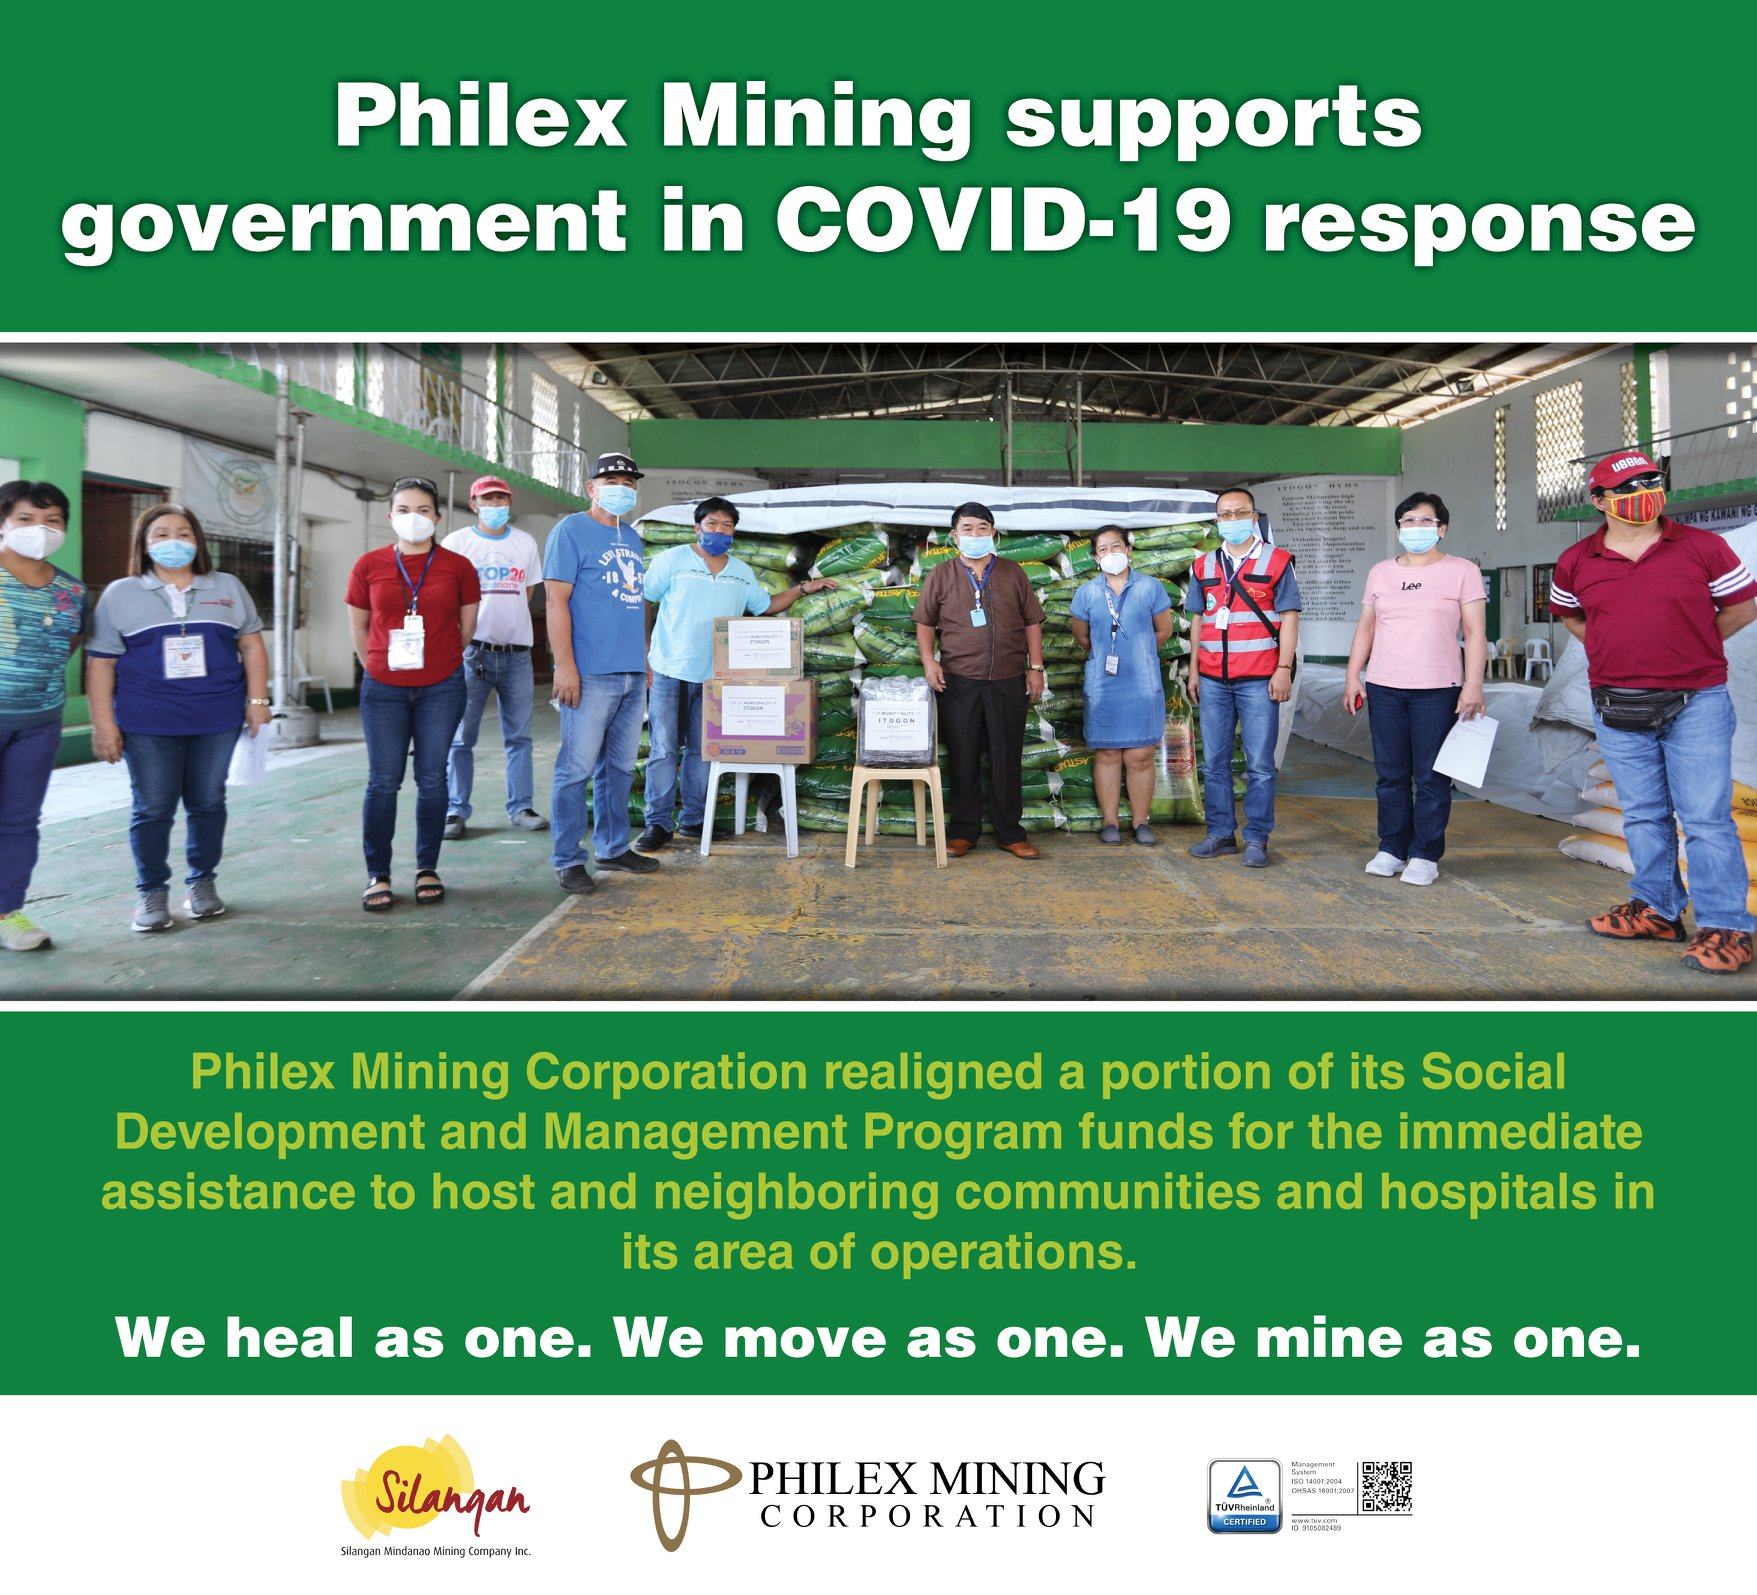 Philex Mining supports government in COVID-19 response